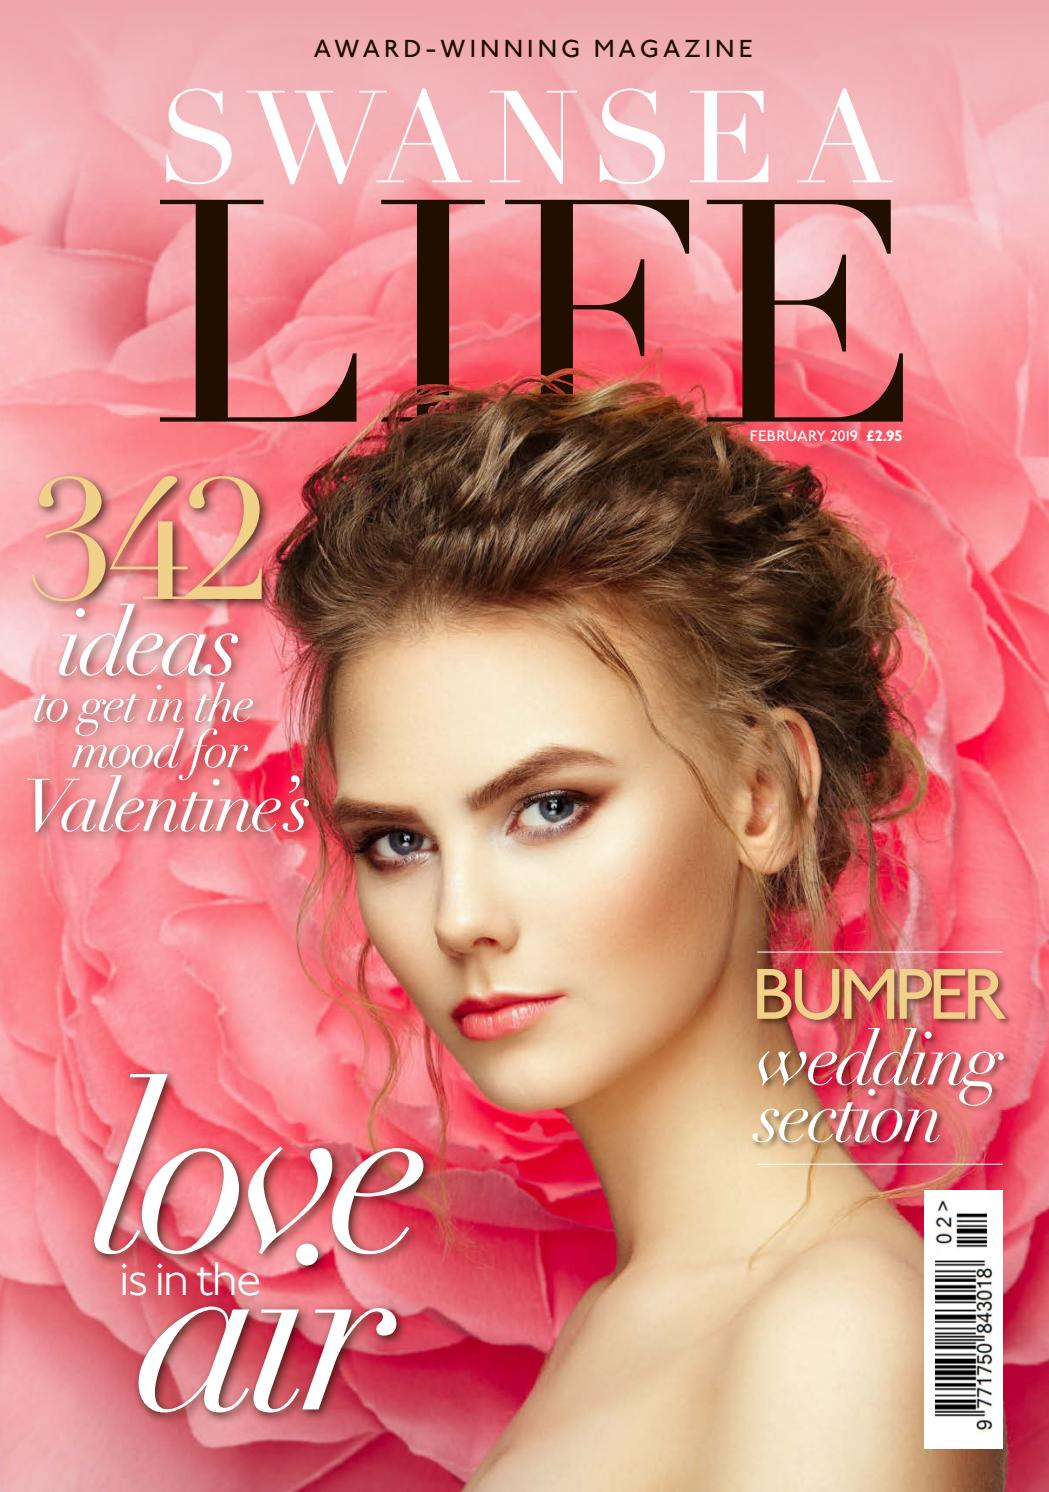 f2b8092b9f Swansea Life February 2019 by Swansea Life - issuu